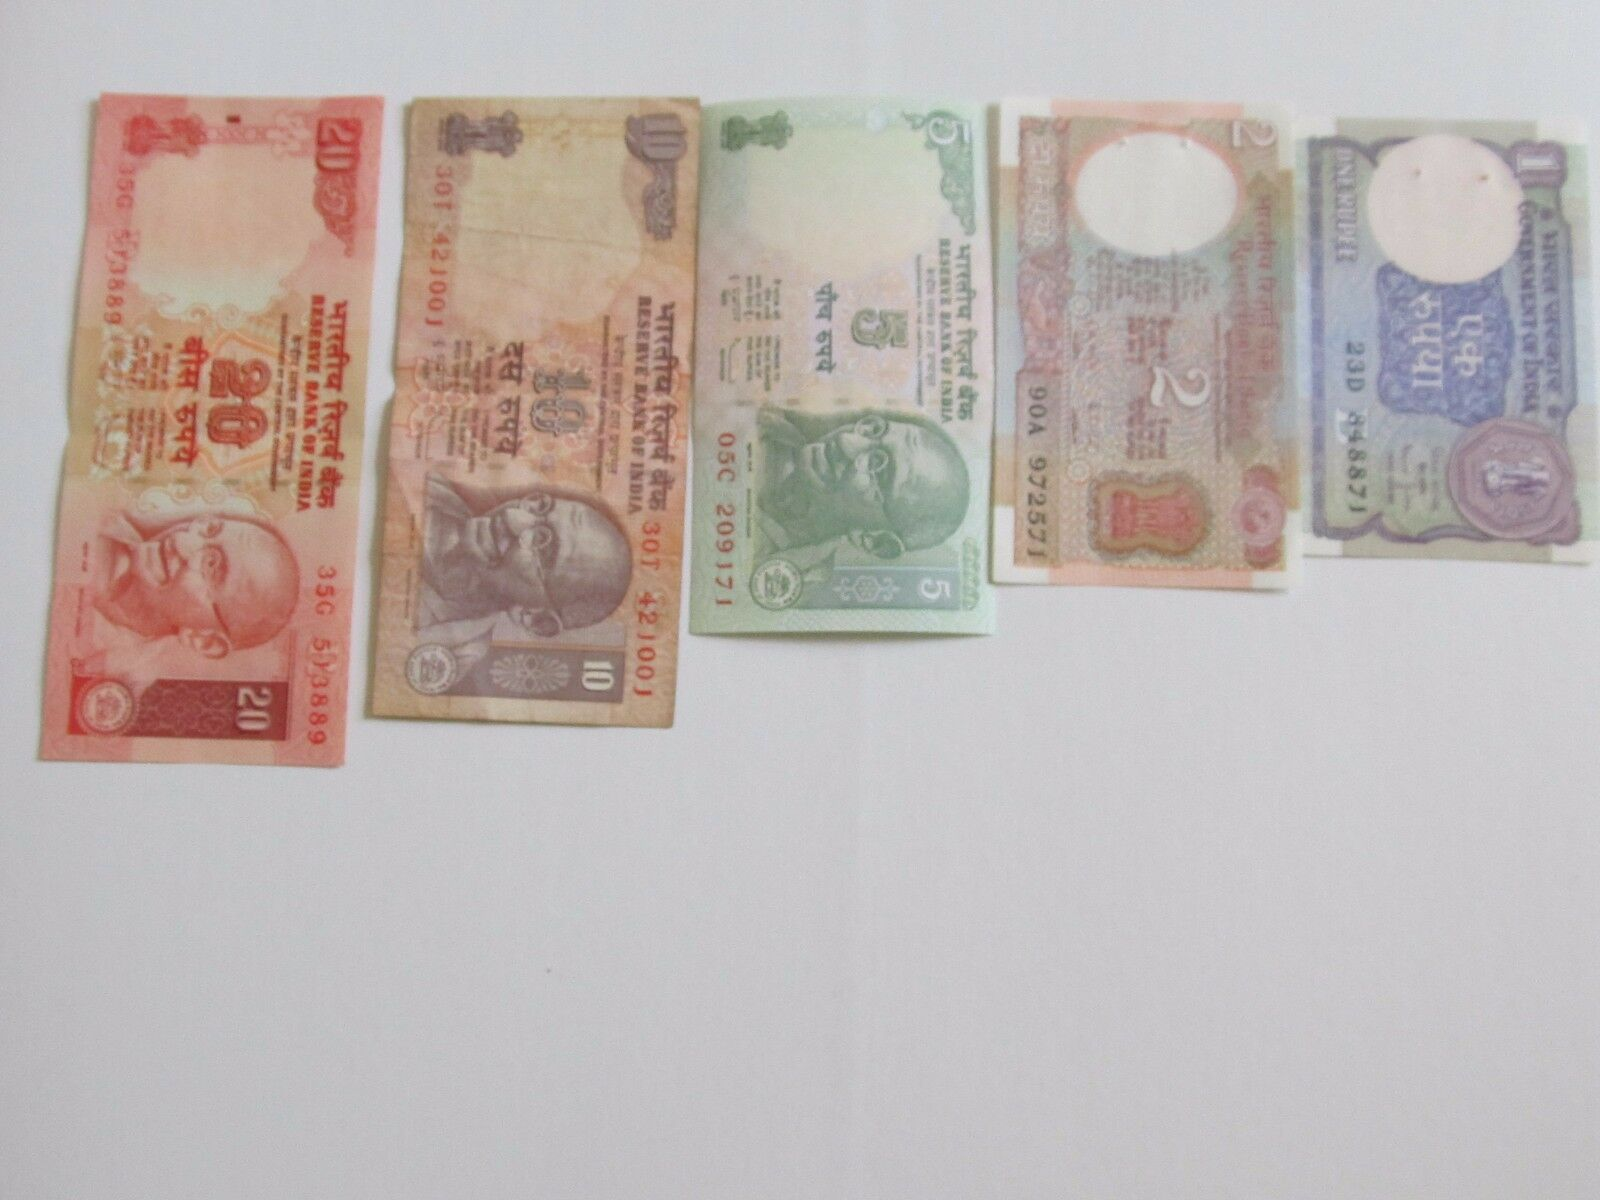 currency paper The artwork on a country's currency usually contains historical or cultural references and is a source of national pride here are copies of all the foreign bank notes collected over the years displaying this great art.